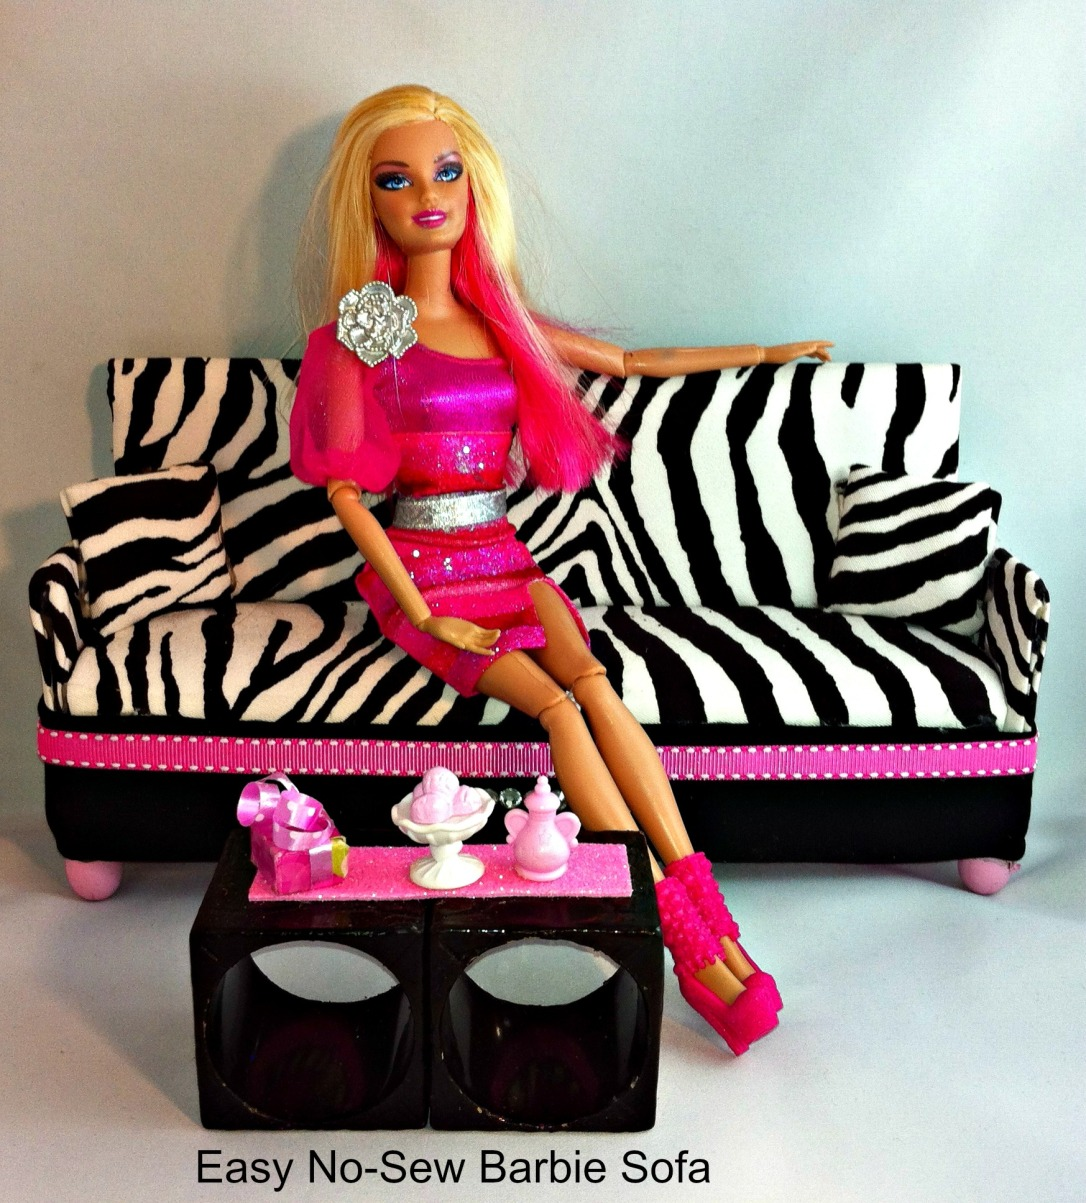 DIY Barbie Doll Couch/Sofa in white and black zebra print and faux leather accents and coffee table made with up-cycled napkin holders.